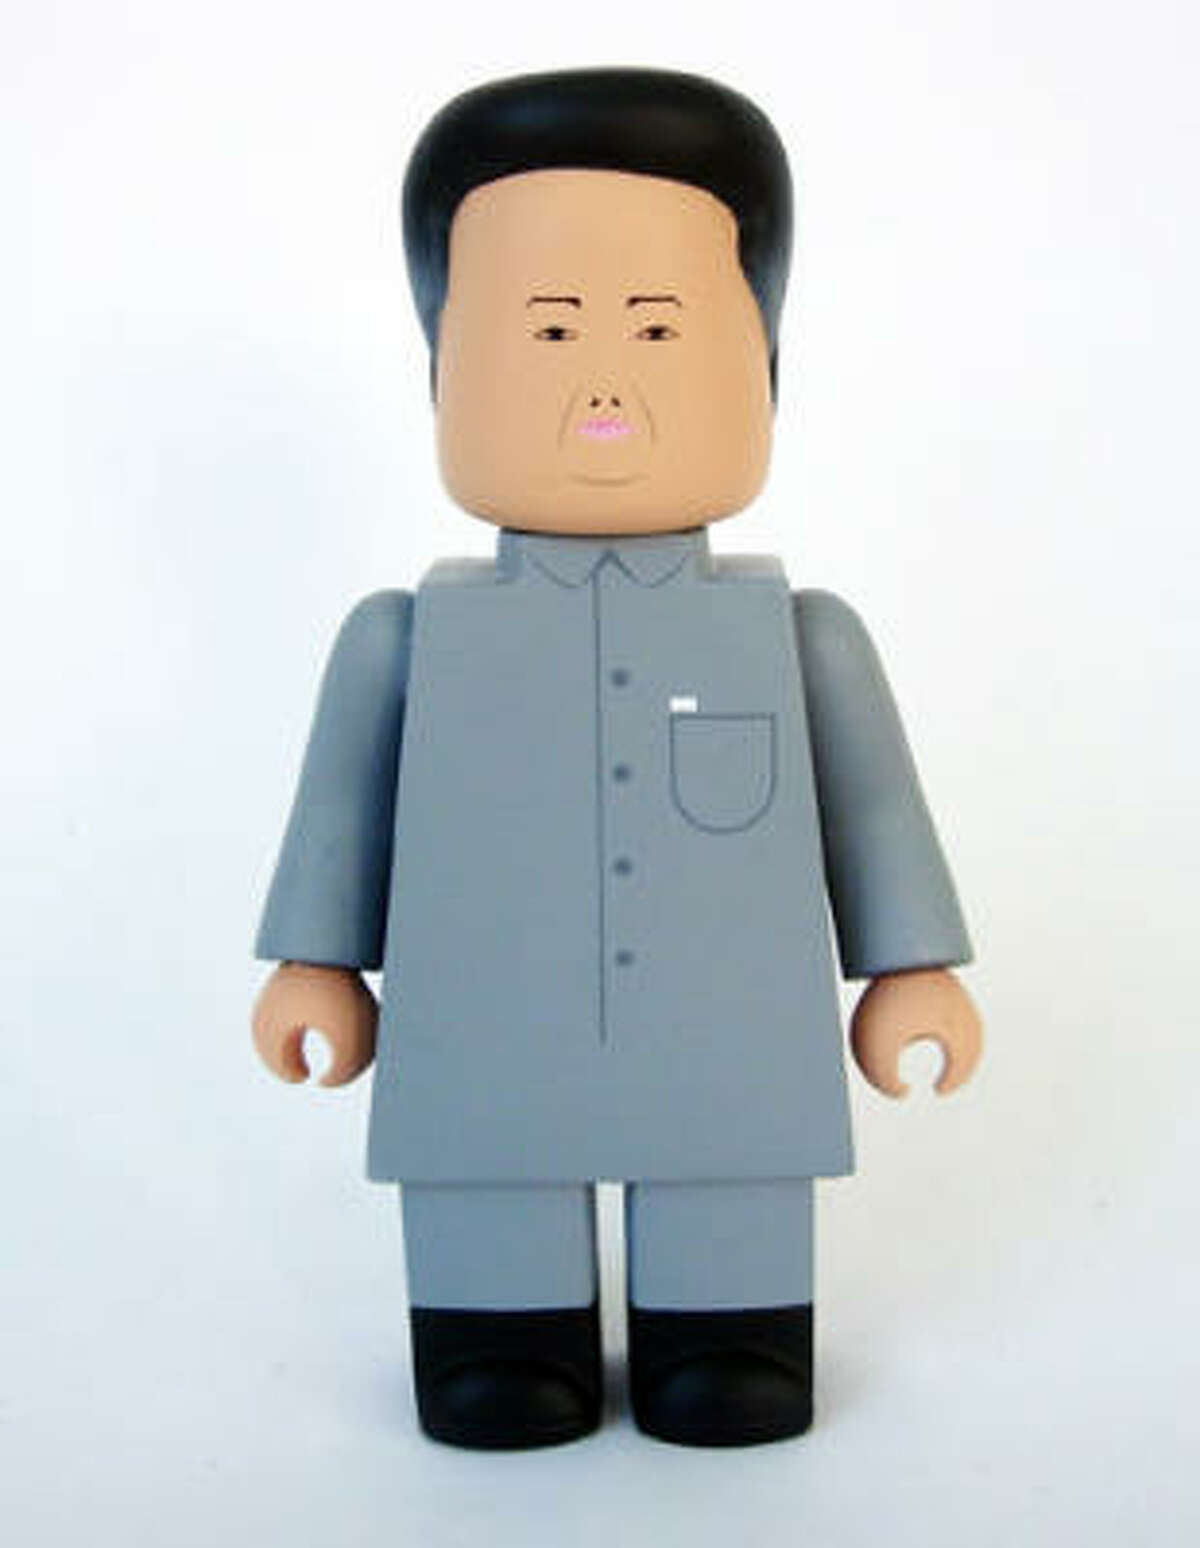 KIM JONG-ILIt wouldn't creep you out if ... : It's not creepy at all. Look how cute he is.We found a doll of this person on eBay for ... : $19.95. (With glasses!)